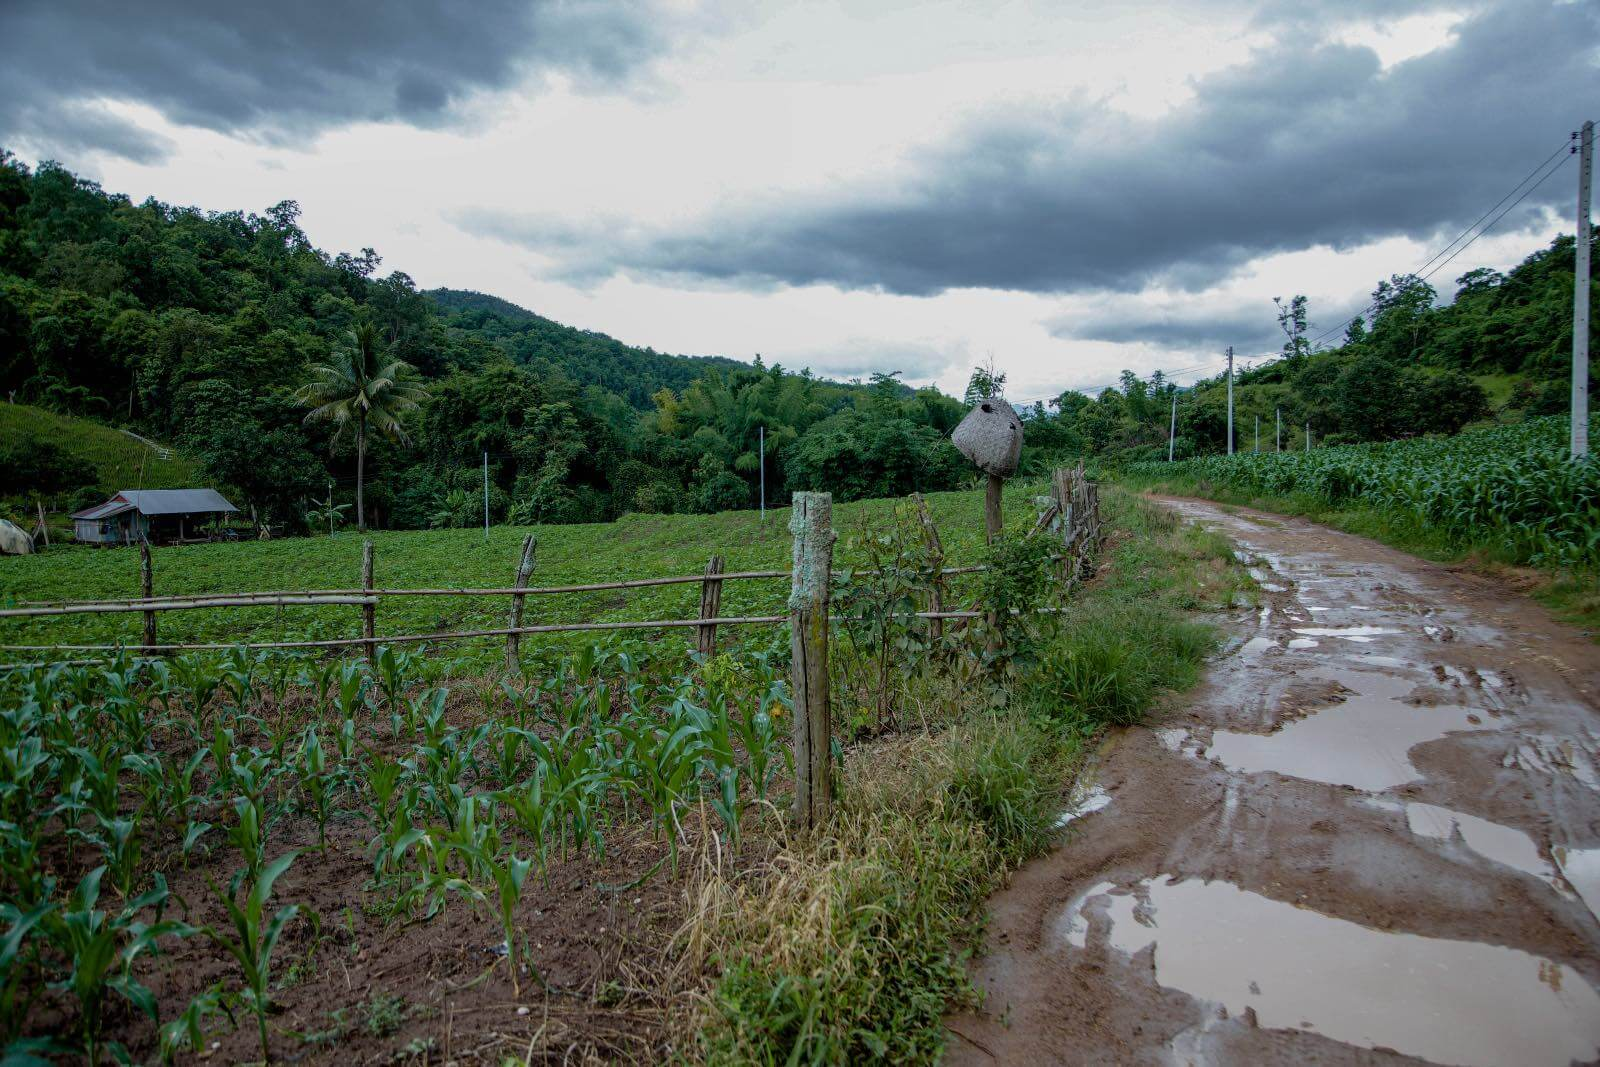 Muddy road in Pai, Thailand on the way to Chiang Mai